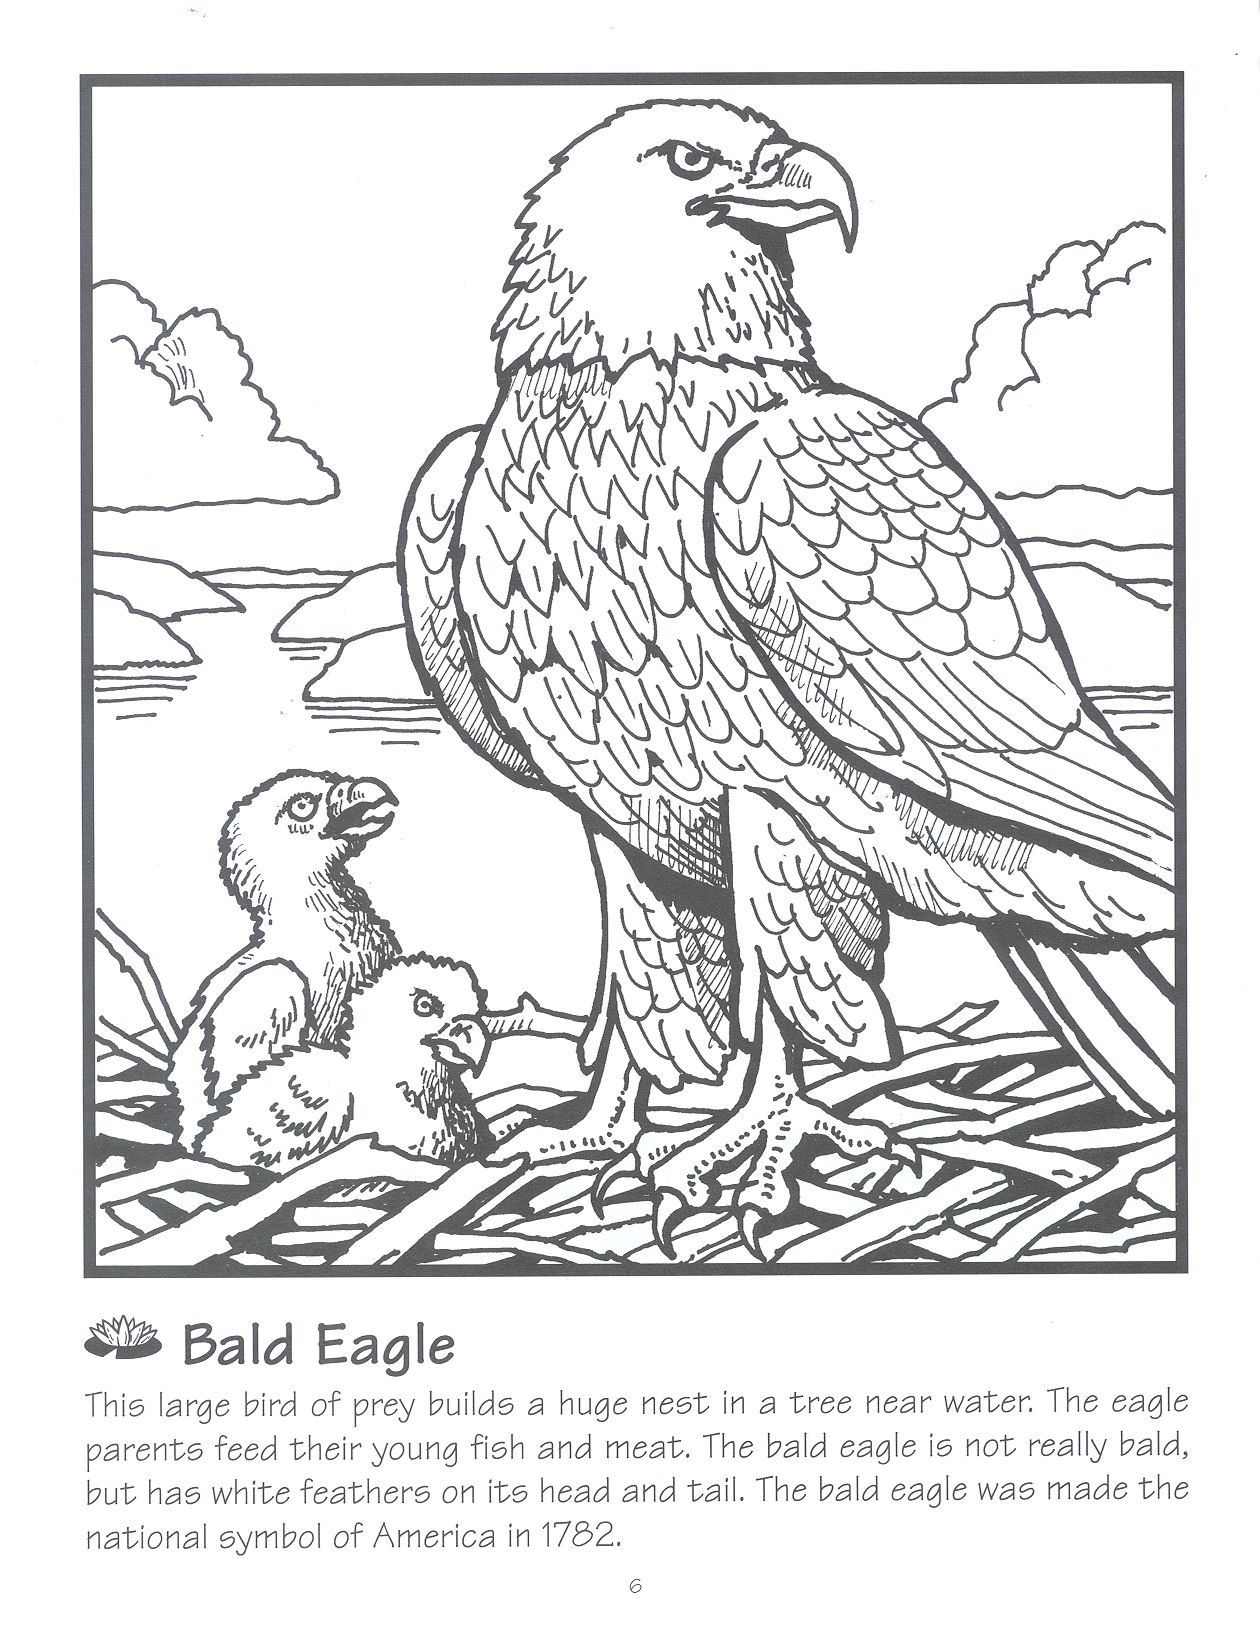 Bald Eagle Nest Coloring Page - Coloring Pages For All Ages